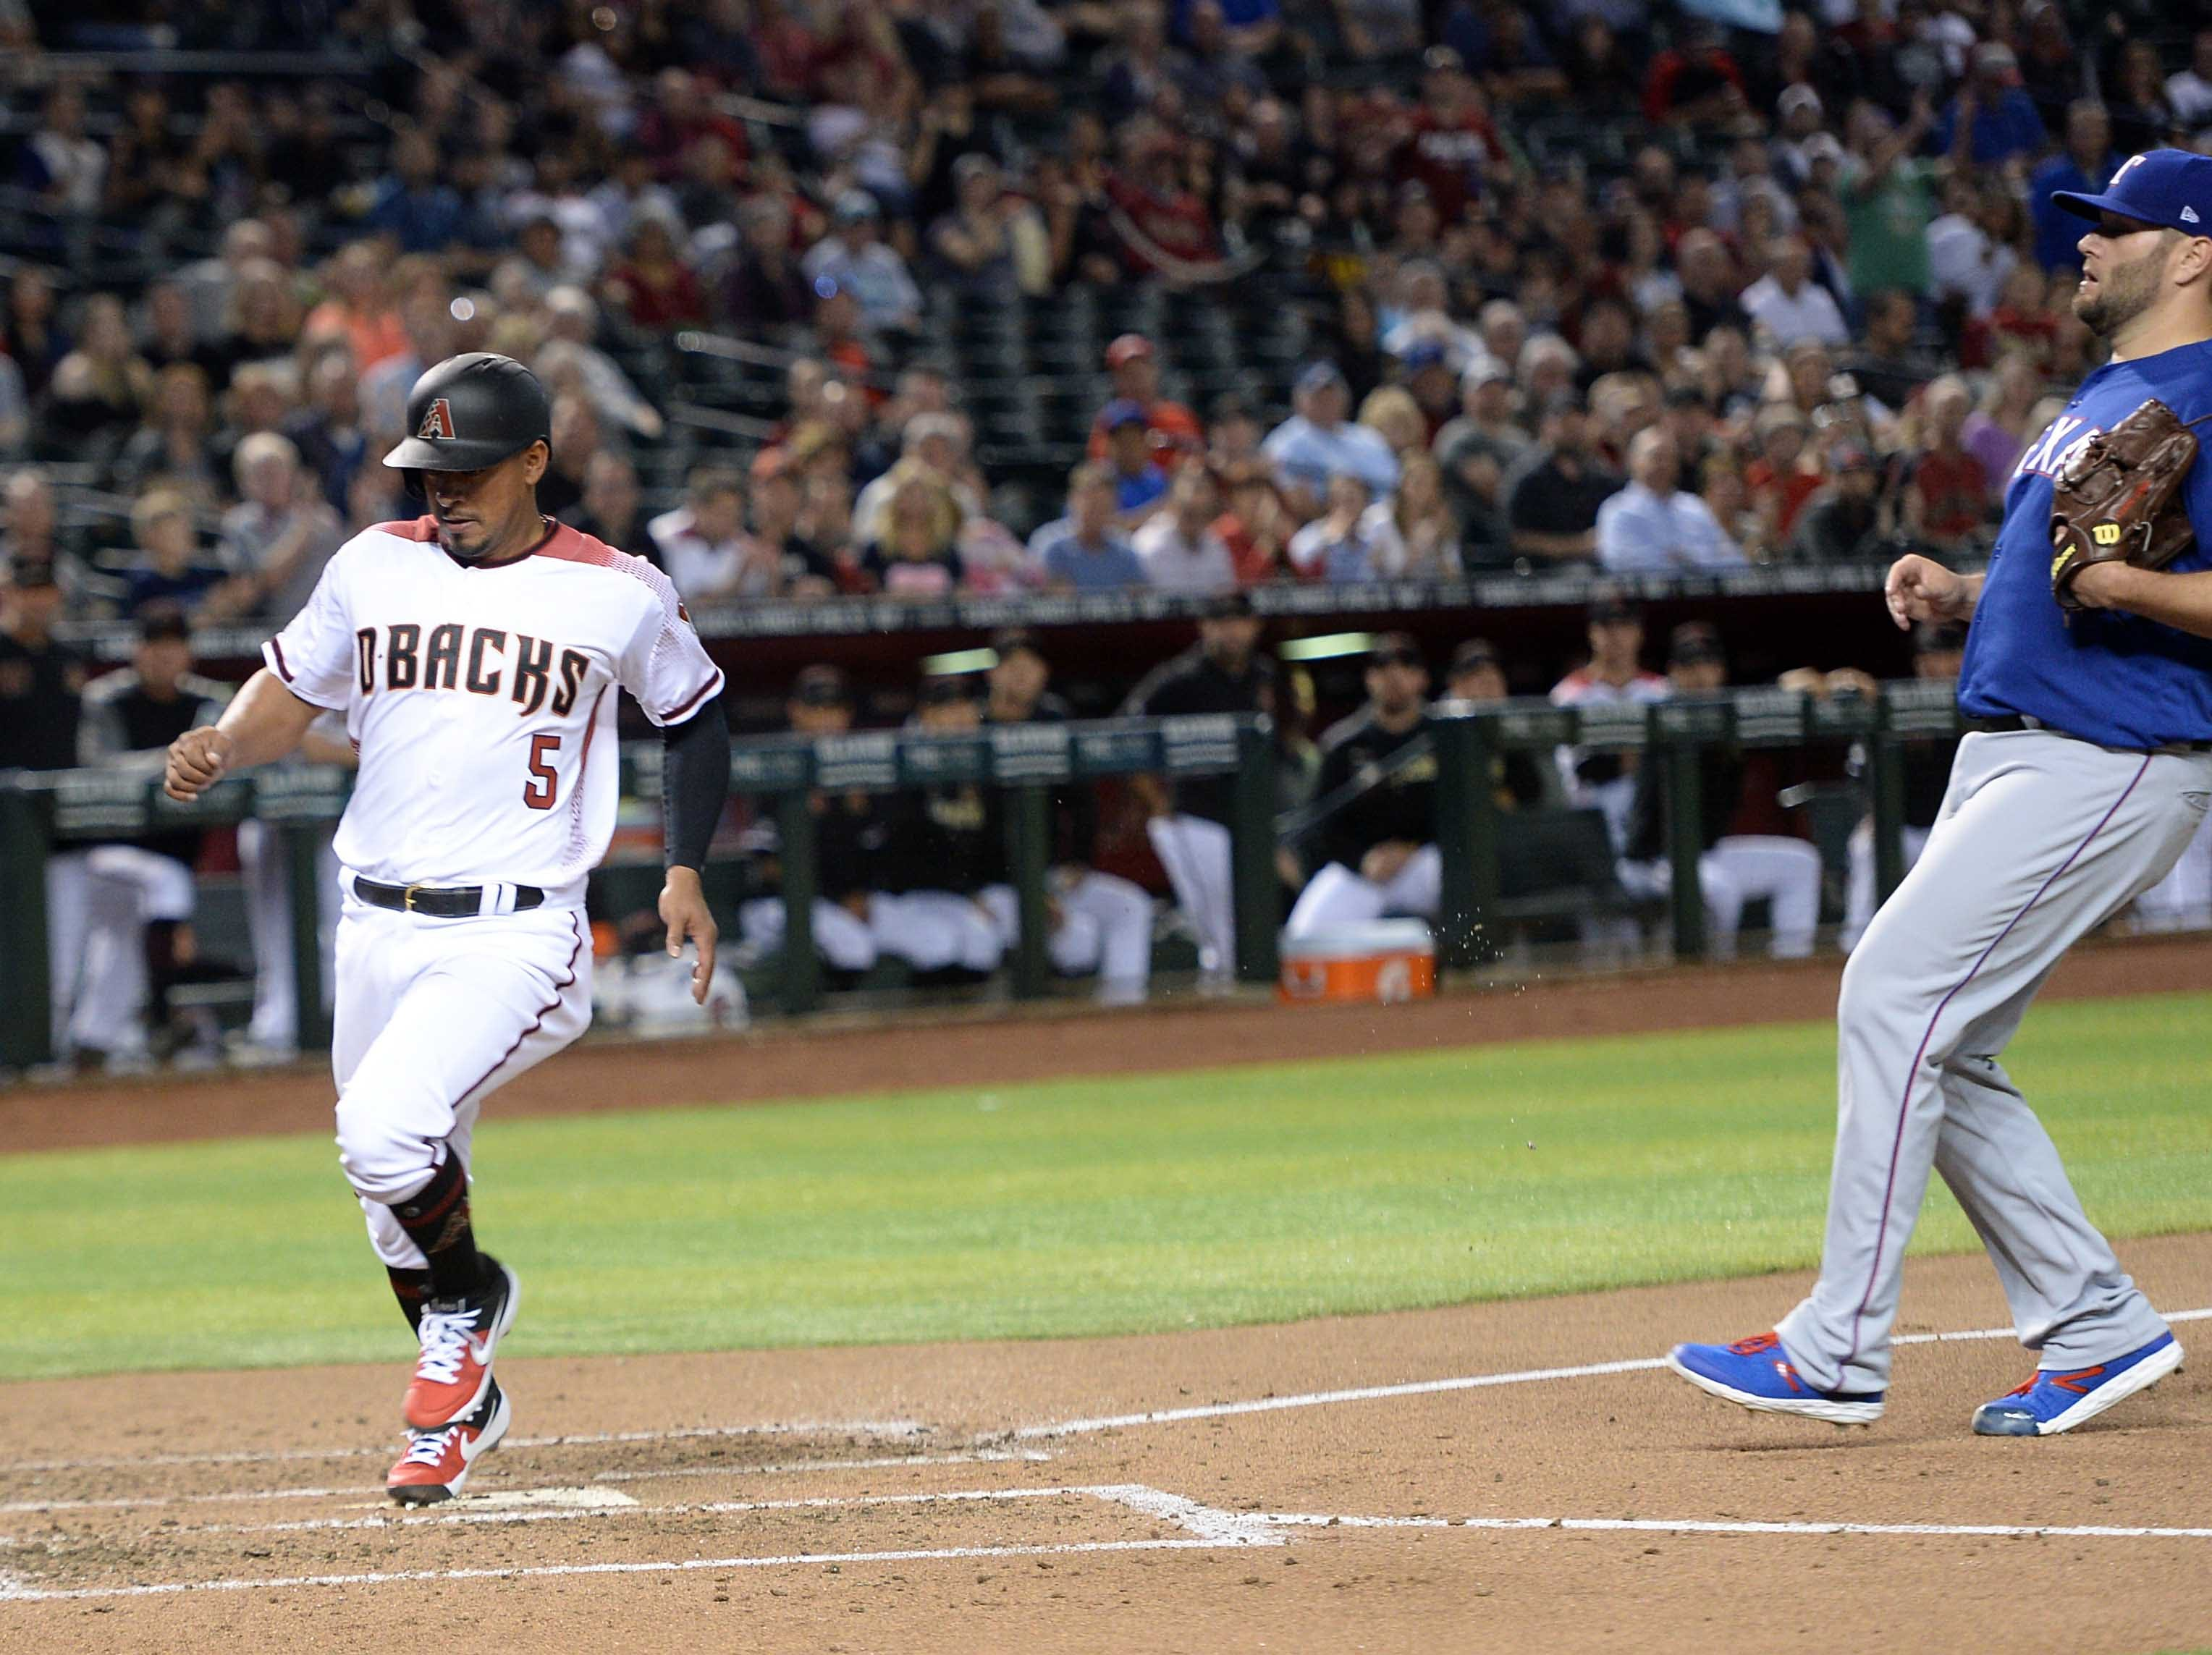 Apr 10, 2019; Phoenix, AZ, USA; Arizona Diamondbacks third baseman Eduardo Escobar (5) scores after a wild pitch by Texas Rangers starting pitcher Lance Lynn (35) during the third inning at Chase Field. Mandatory Credit: Joe Camporeale-USA TODAY Sports